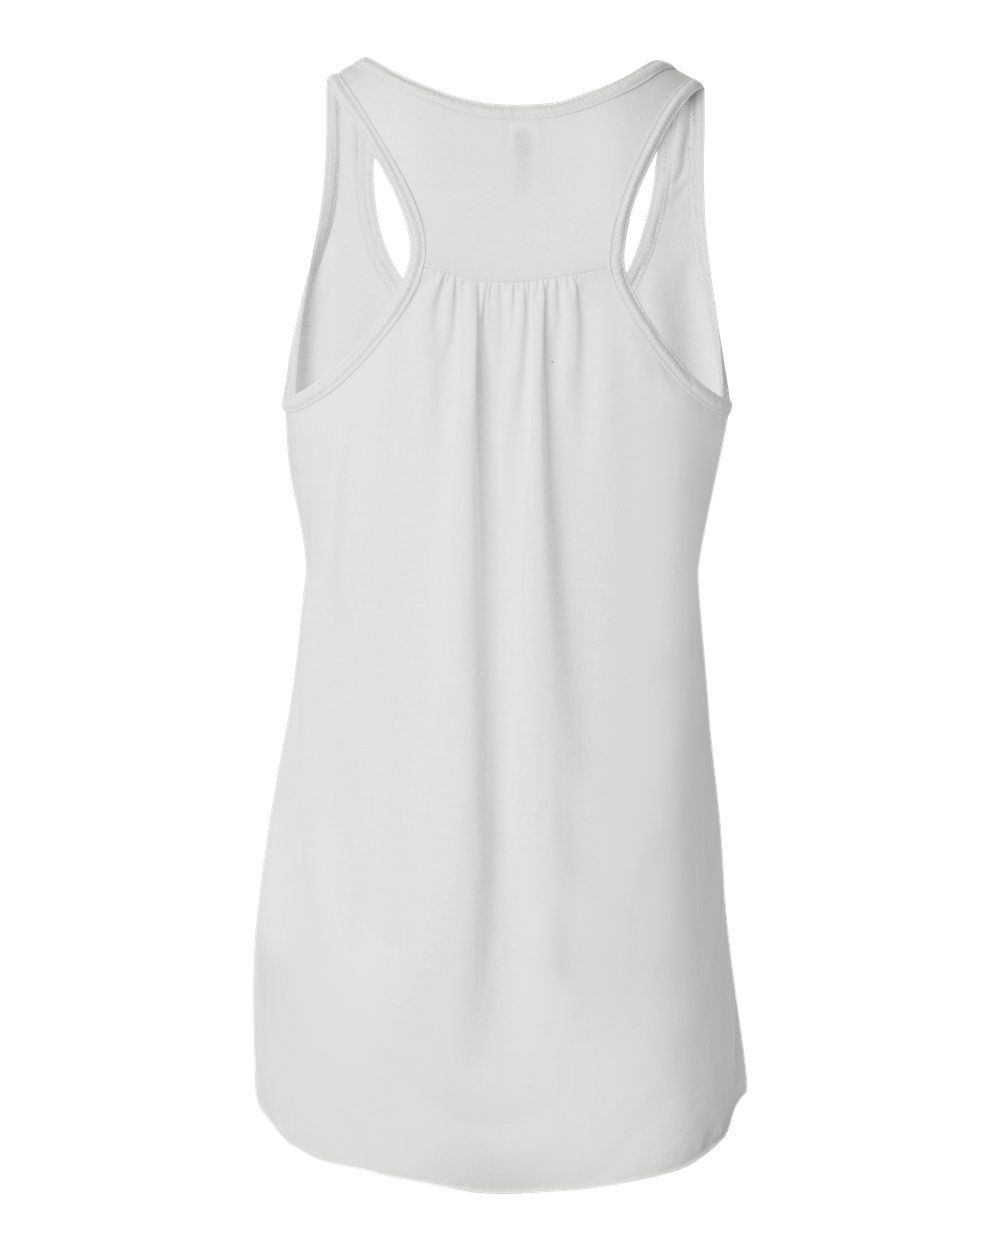 d927a7d30db7 This top is our more loosely fit tank body. It's flowy in all the right  places with a racerback that makes it easy to wear. Made of an  exceptionally soft ...